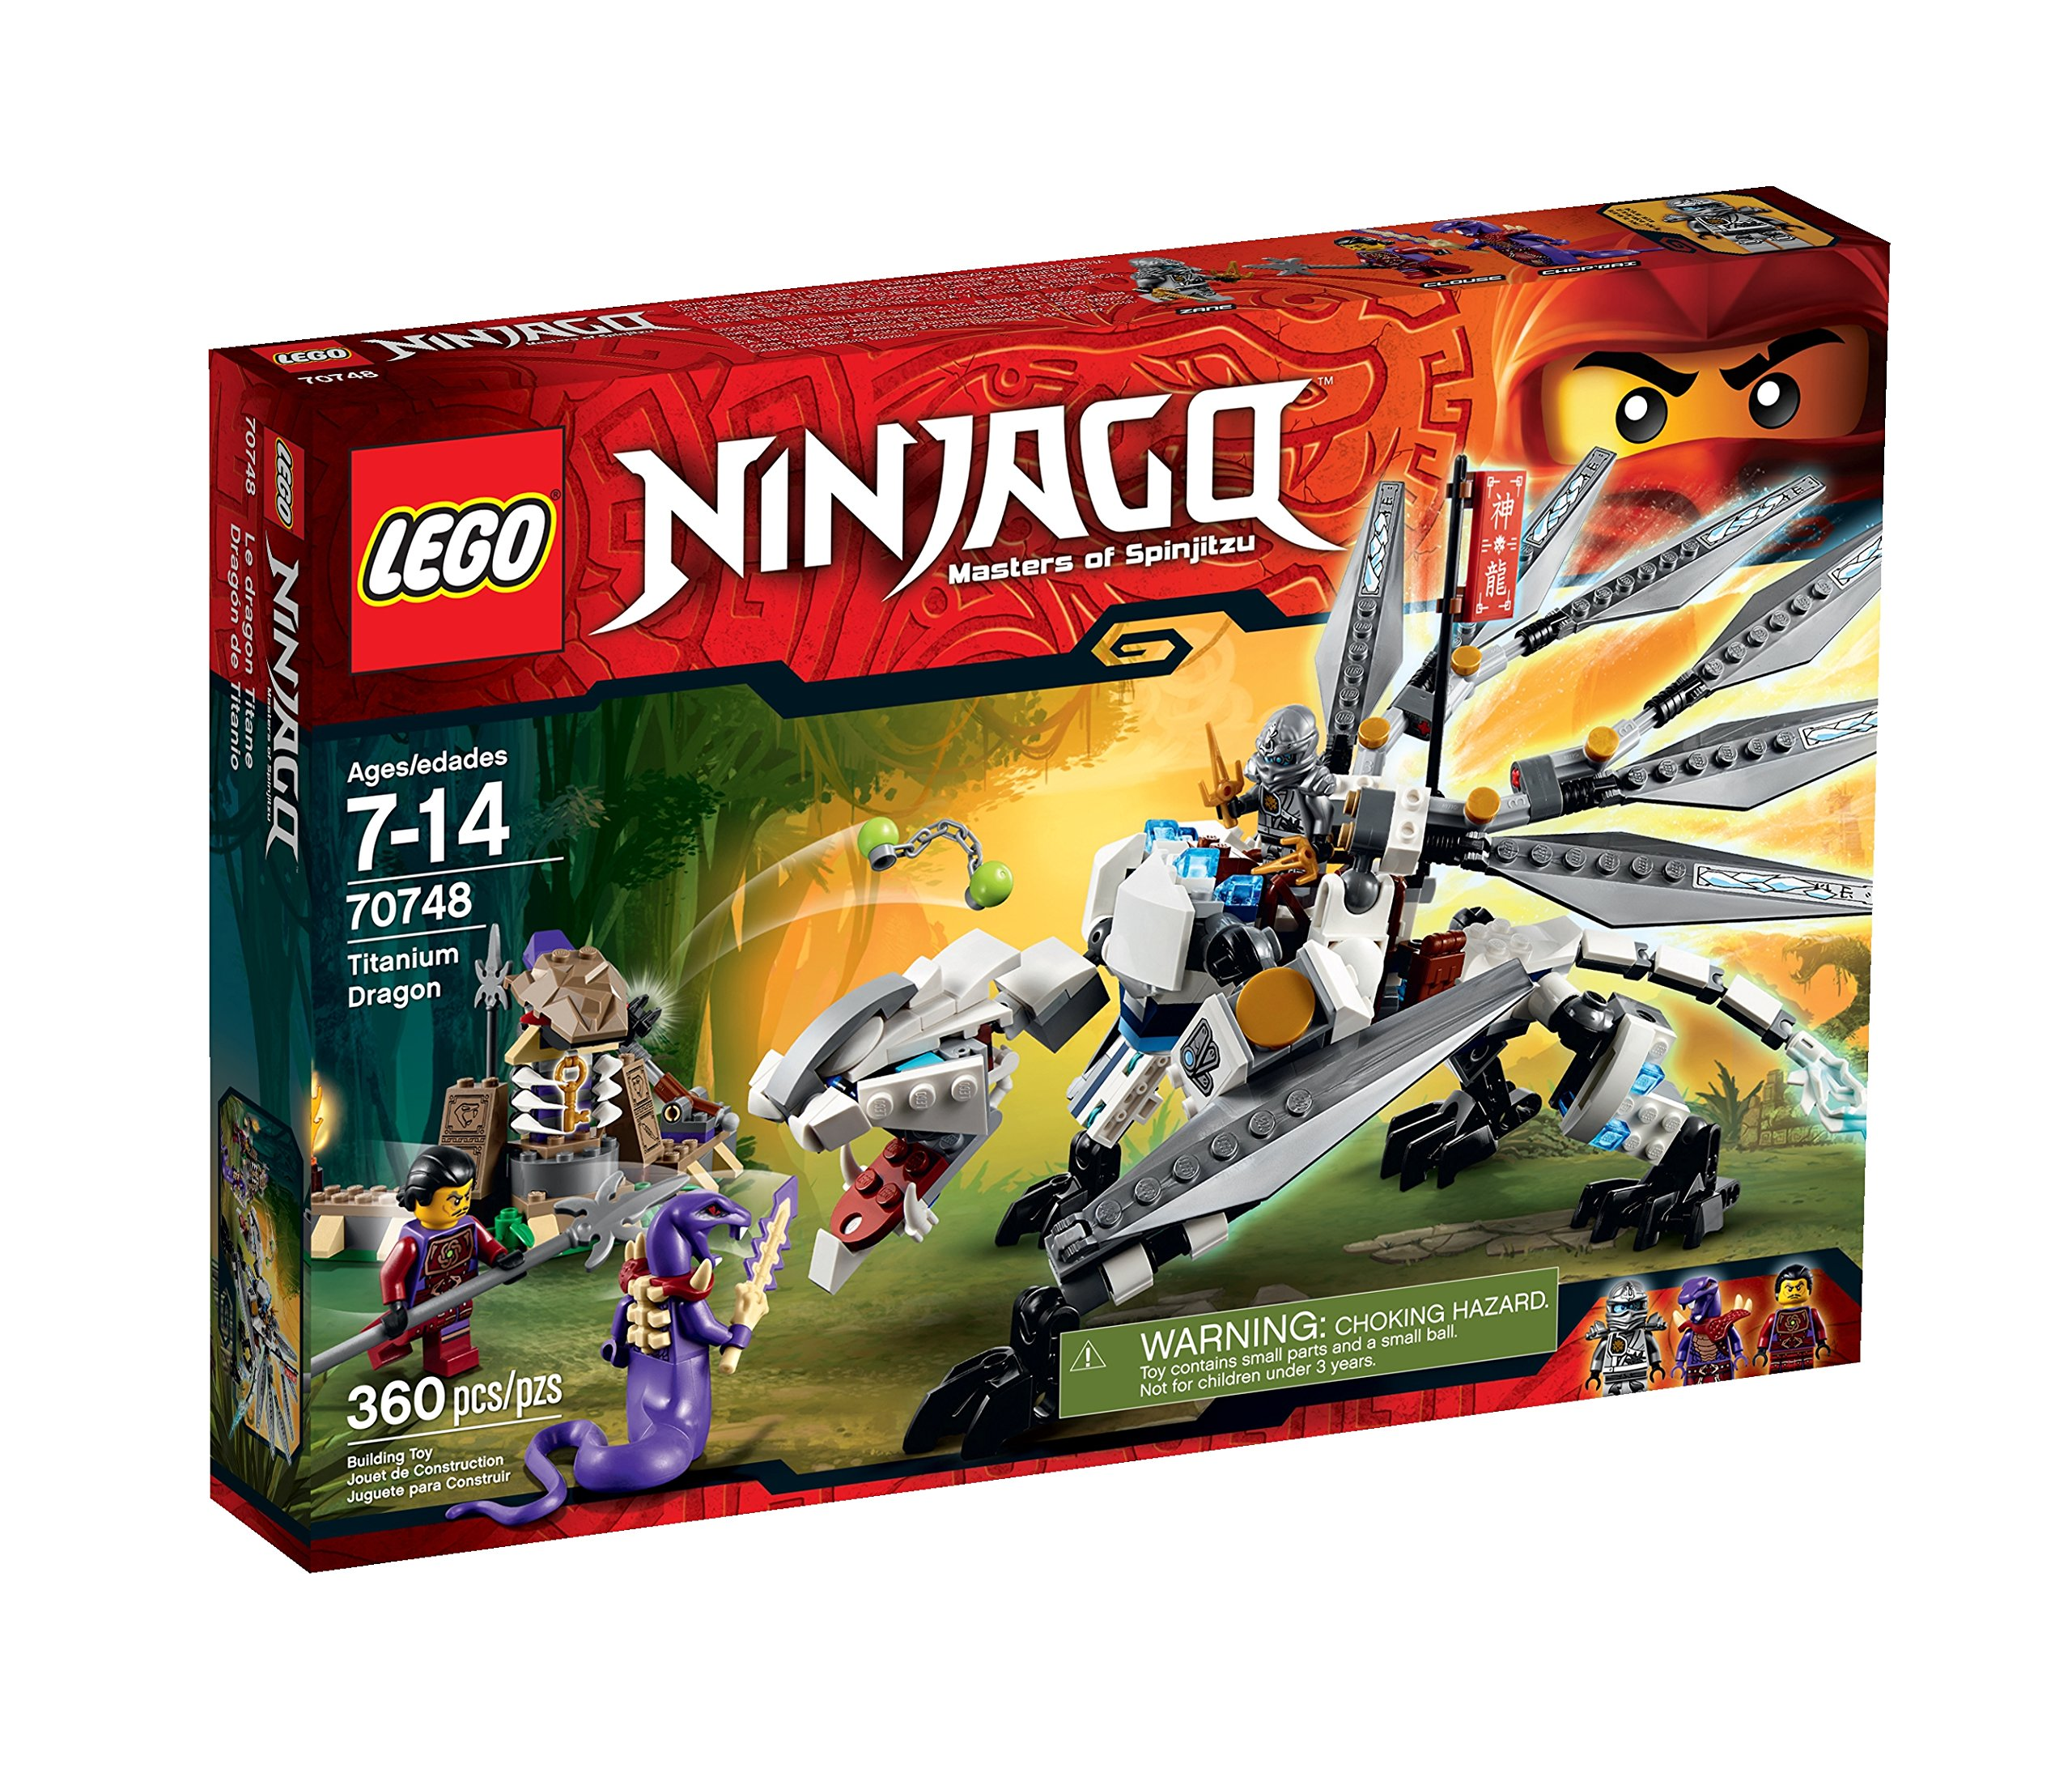 LEGO Ninjago Titanium Dragon Toy (Discontinued by manufacturer)